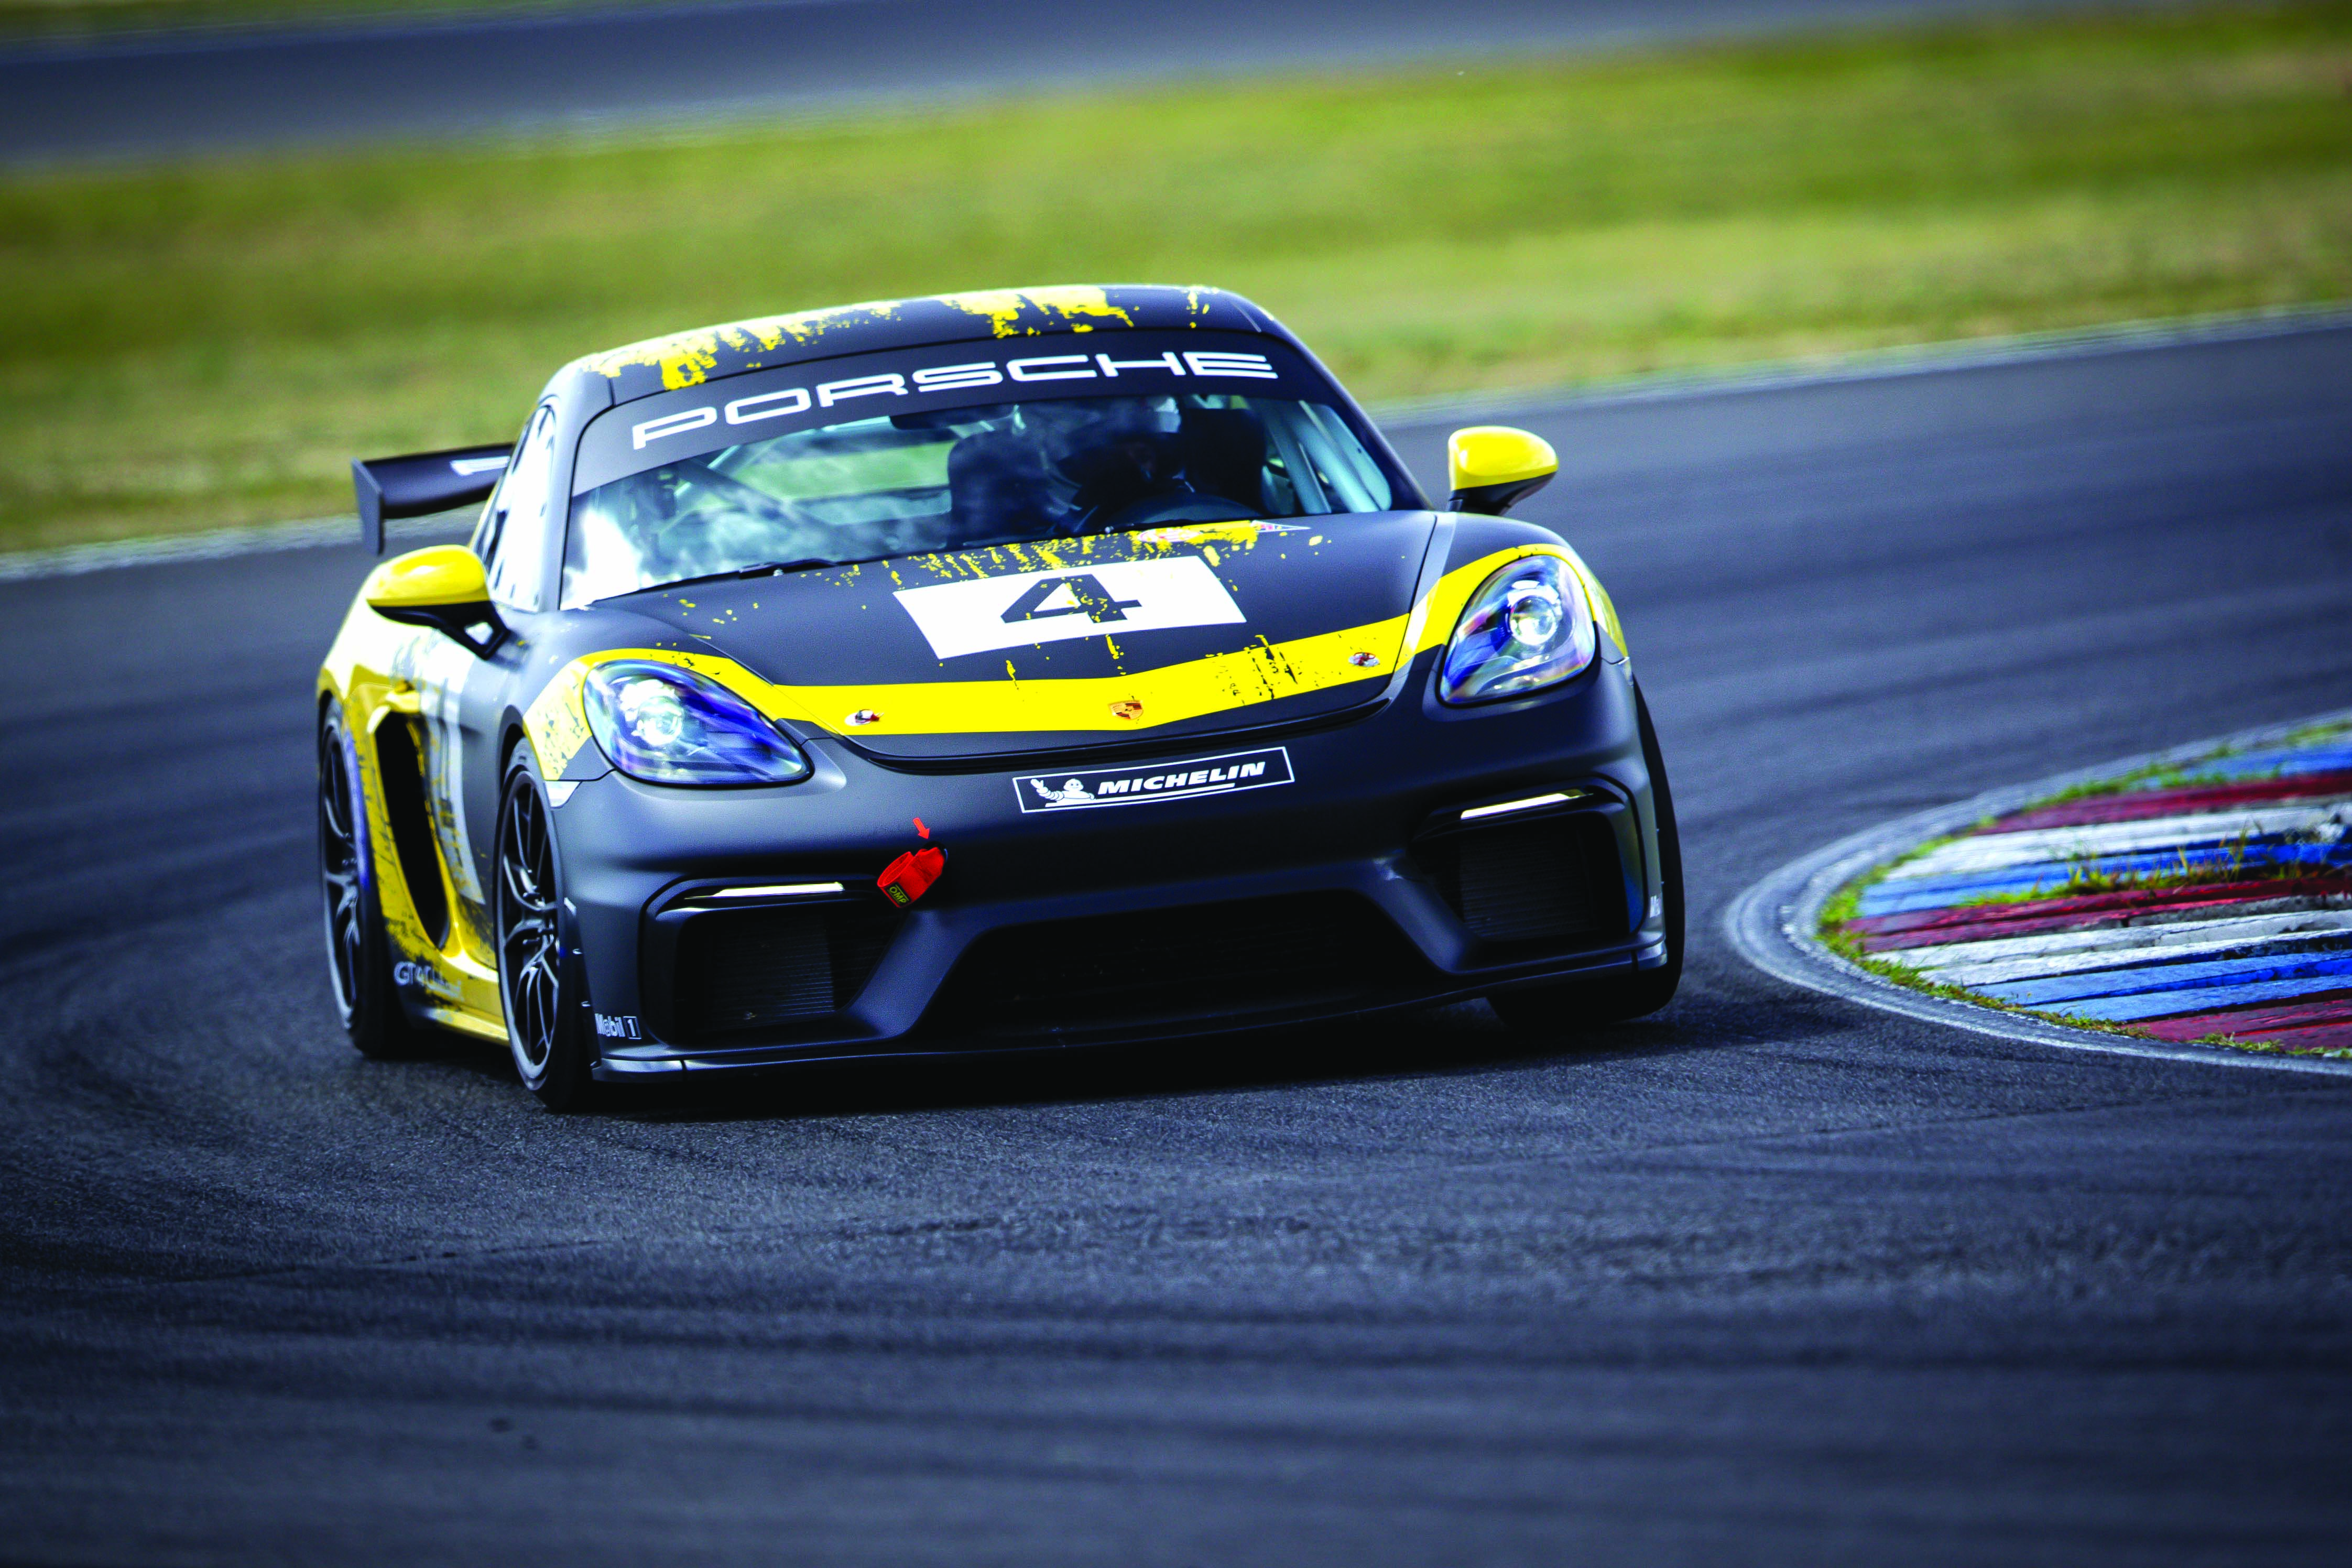 a black and yellow race car racing on the track